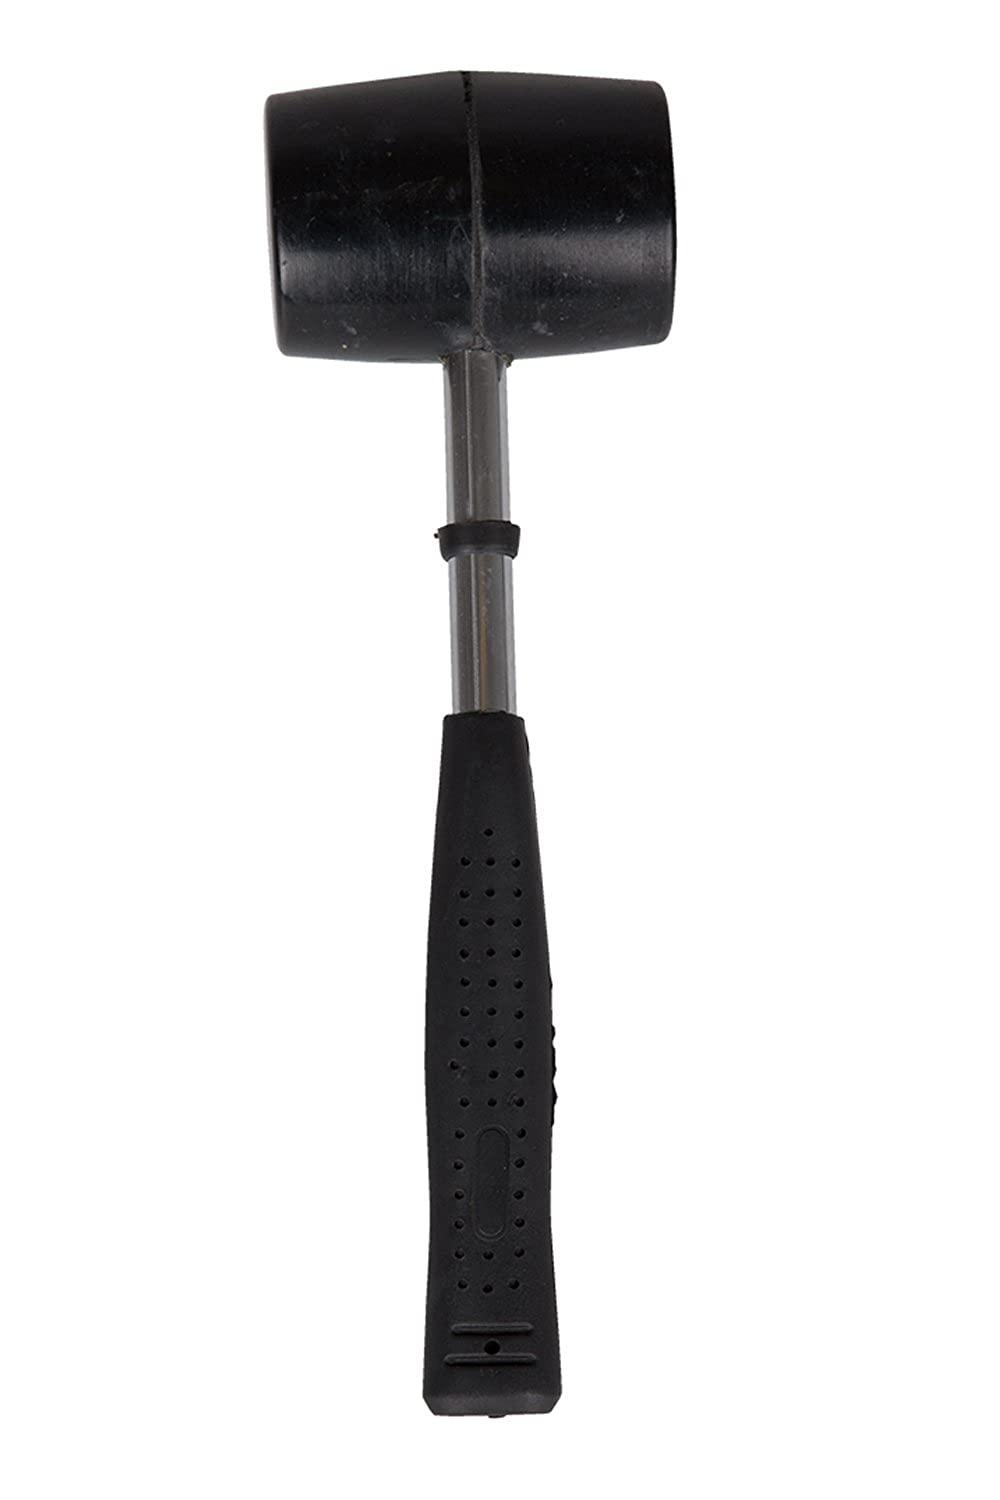 Mountain Warehouse Rubber Mallet - Steel Shaft Hammer, Durable Tool, Secures Tent Pegs in Hard Ground - For Camping, Hiking & Home Use Hiking & Home Use Black